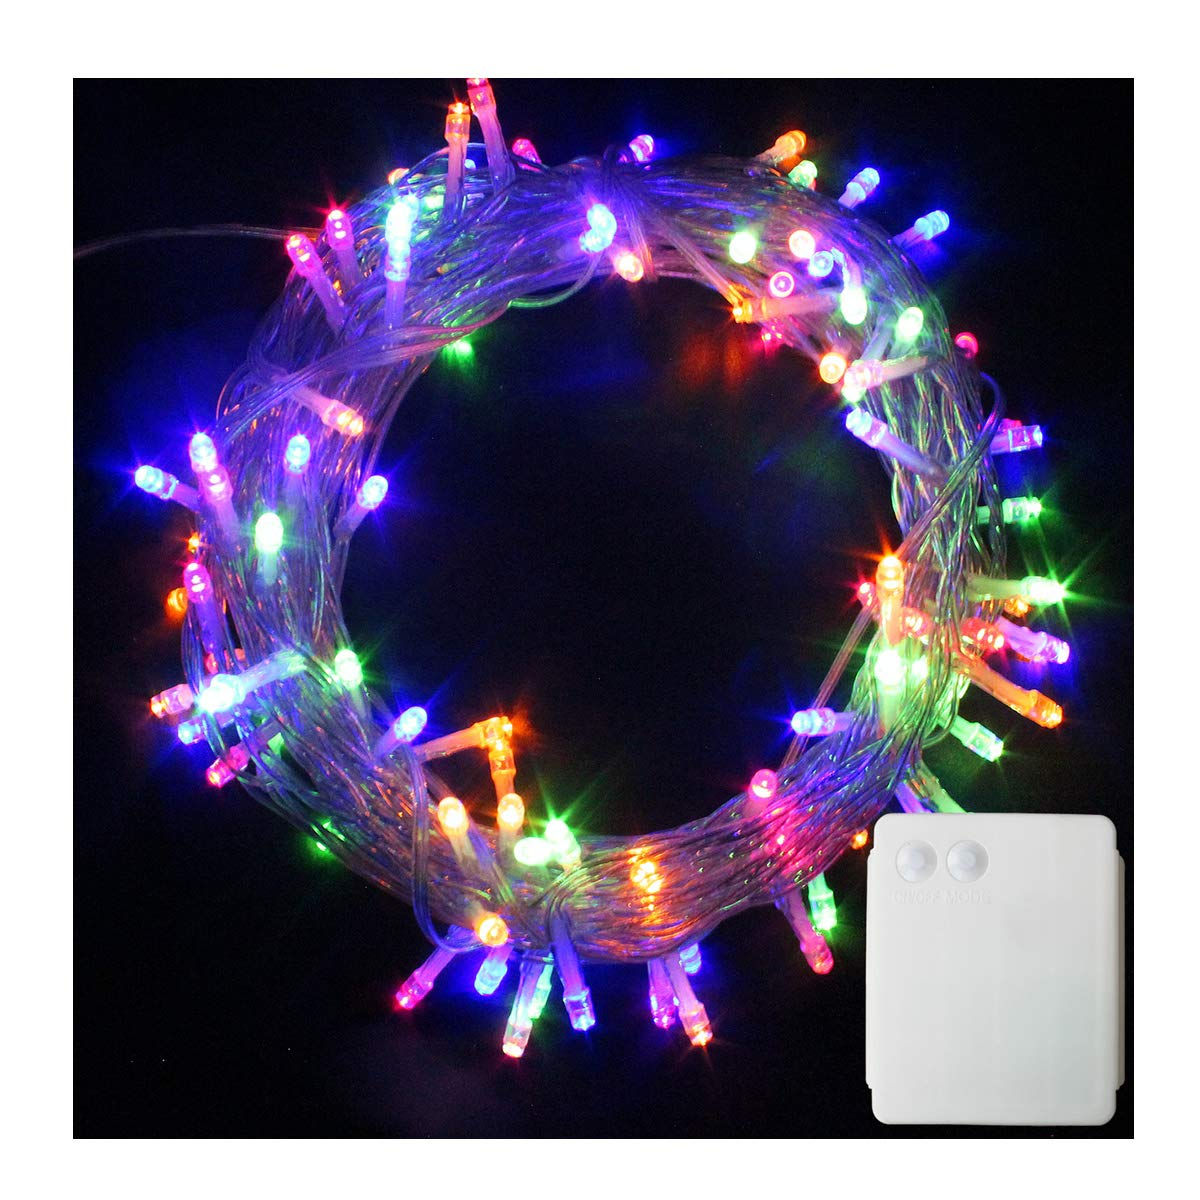 PMS 500 LED String Fairy Lights Clear Cable Battery Power Operated Indoor Outdoor for Christmas Tree Xmas Party Garden Decoration Multi Color 500 LEDs